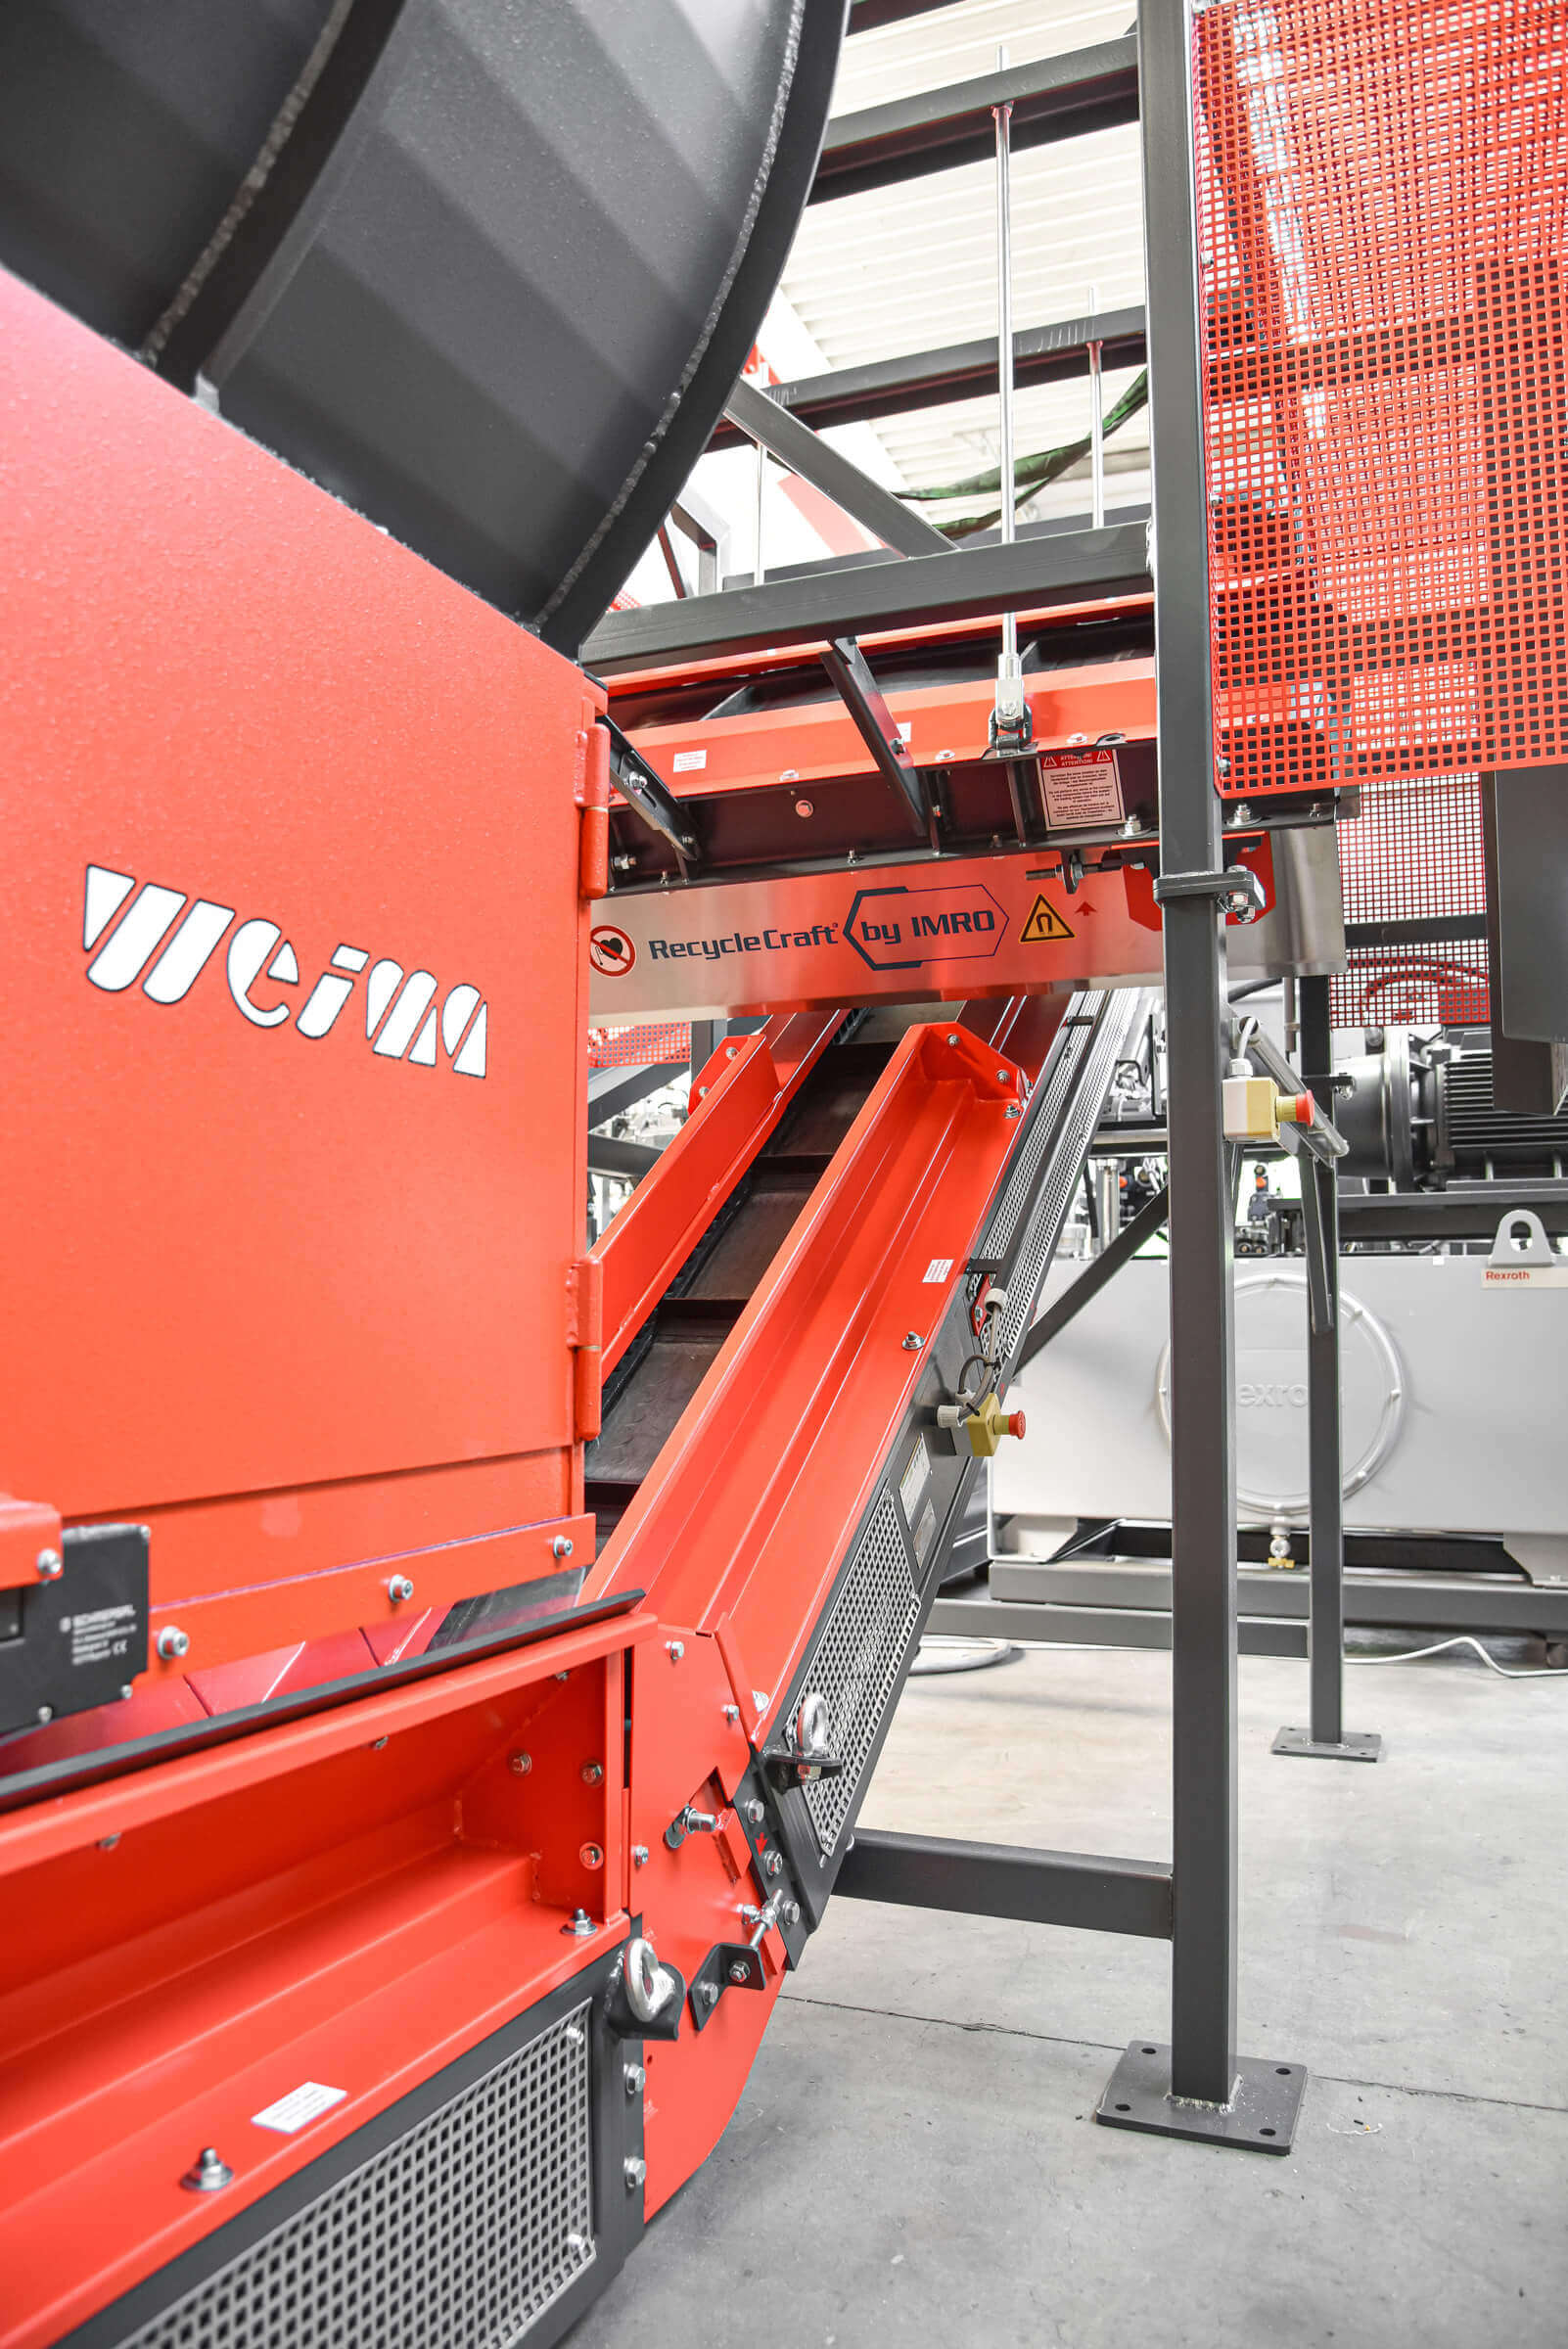 WEIMA conveyor technology and magnet